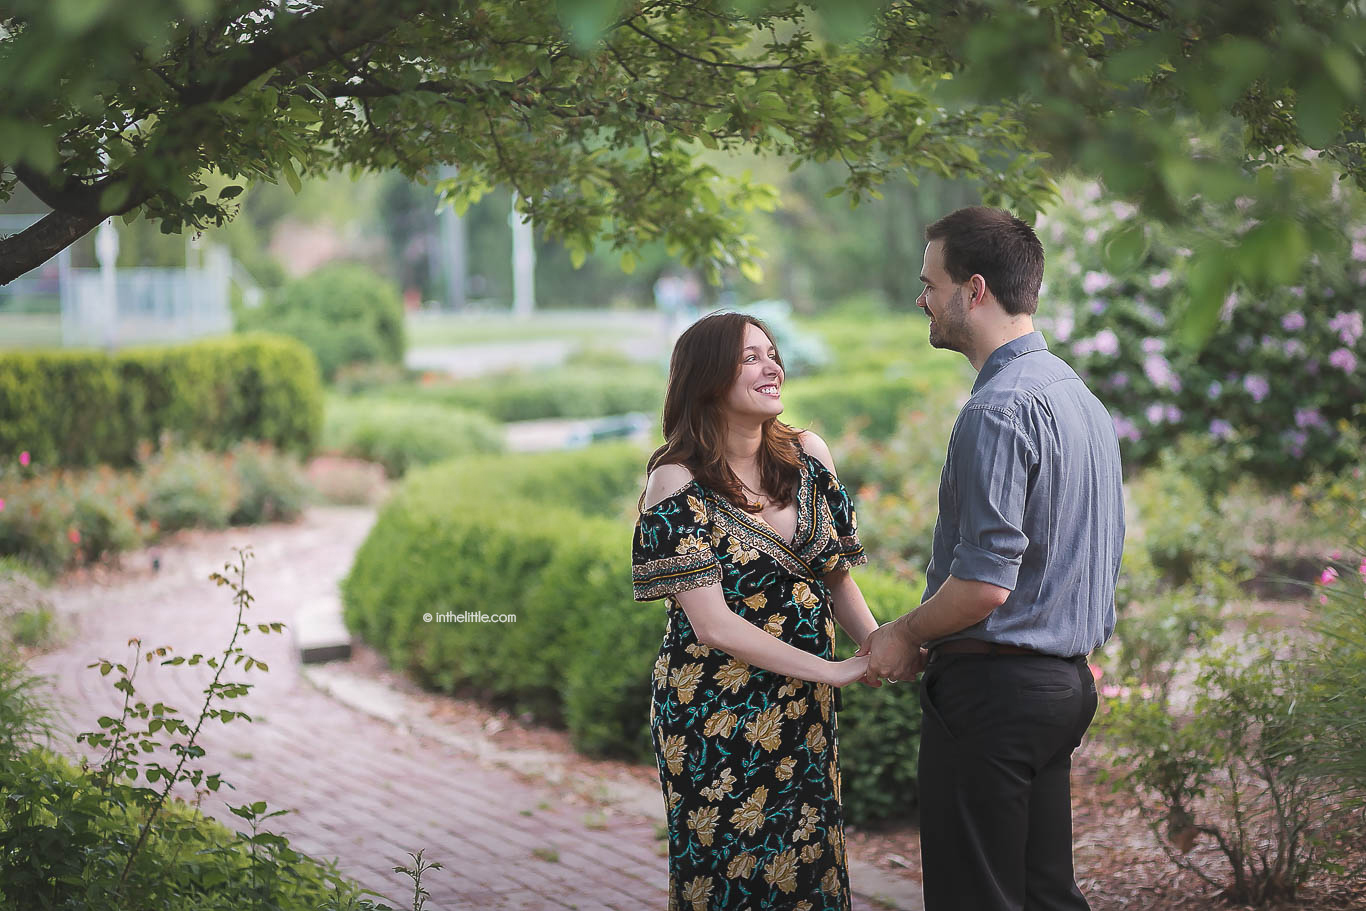 St. Louis Pregnancy Photography Sessions